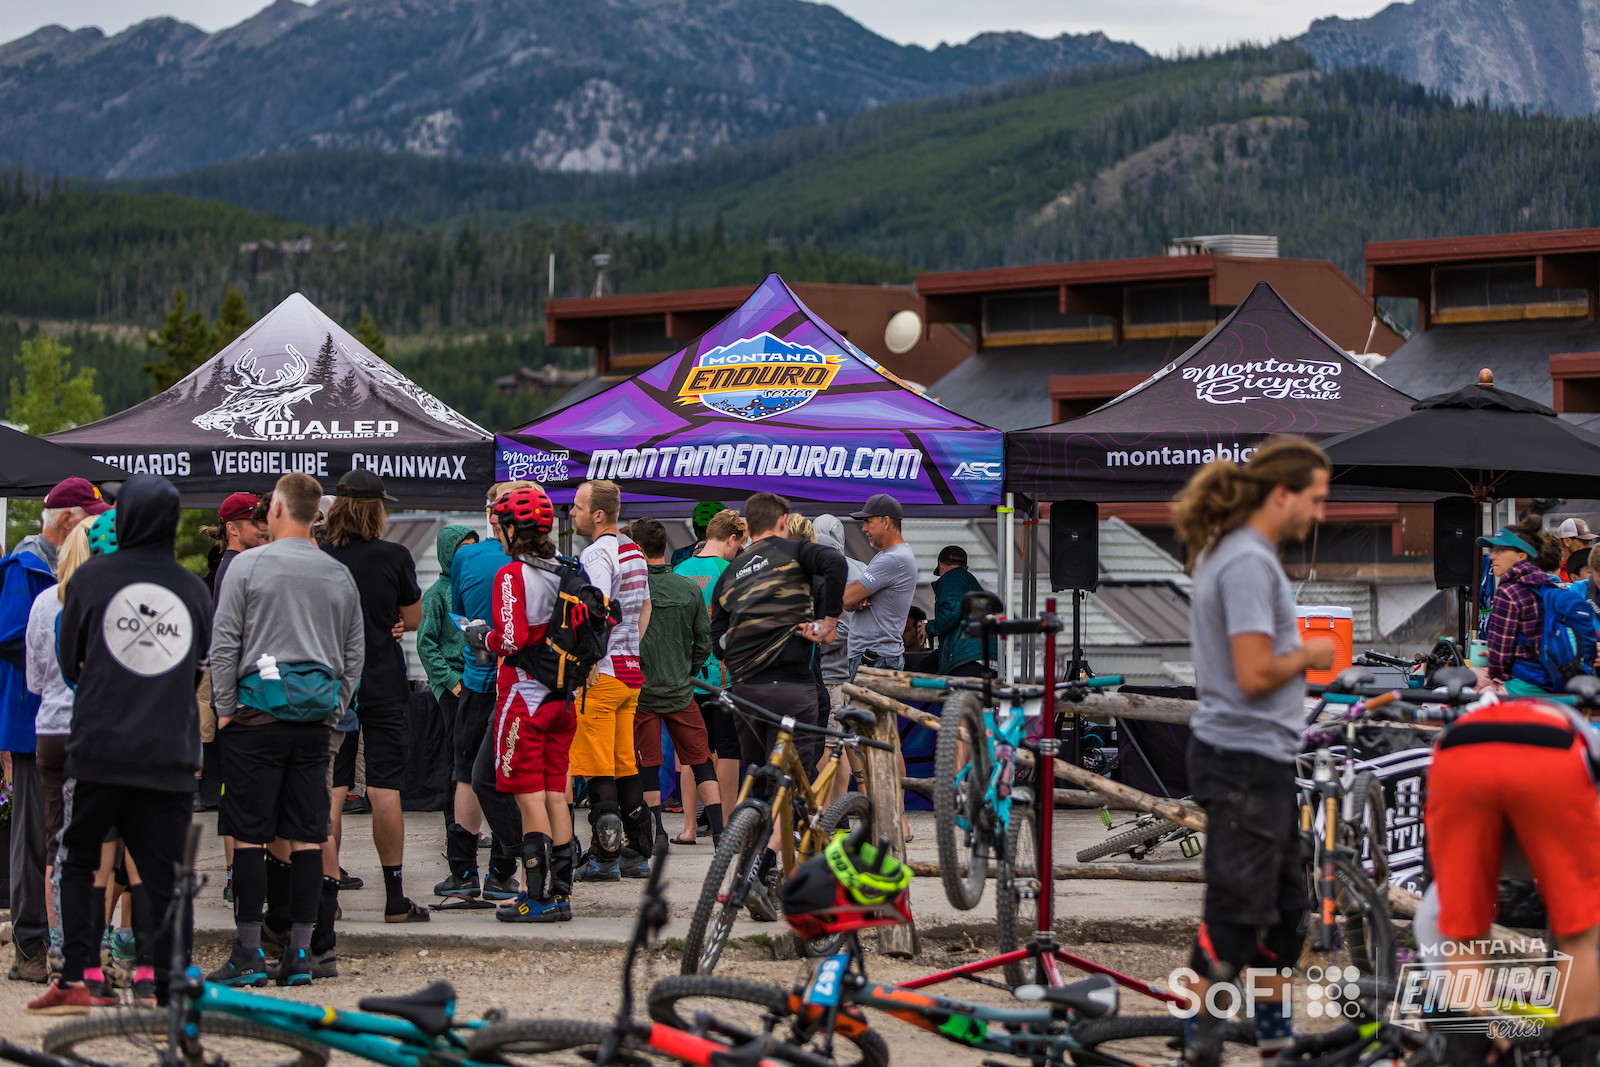 Busy morning at the base with check-ins and final bike inspections. The 2019 course featured more climbing and took racers on a tour of the whole mountain. This year s course featured 6 stages with 6000 of climbing and 7700 of descending. Not for the faint of heart.